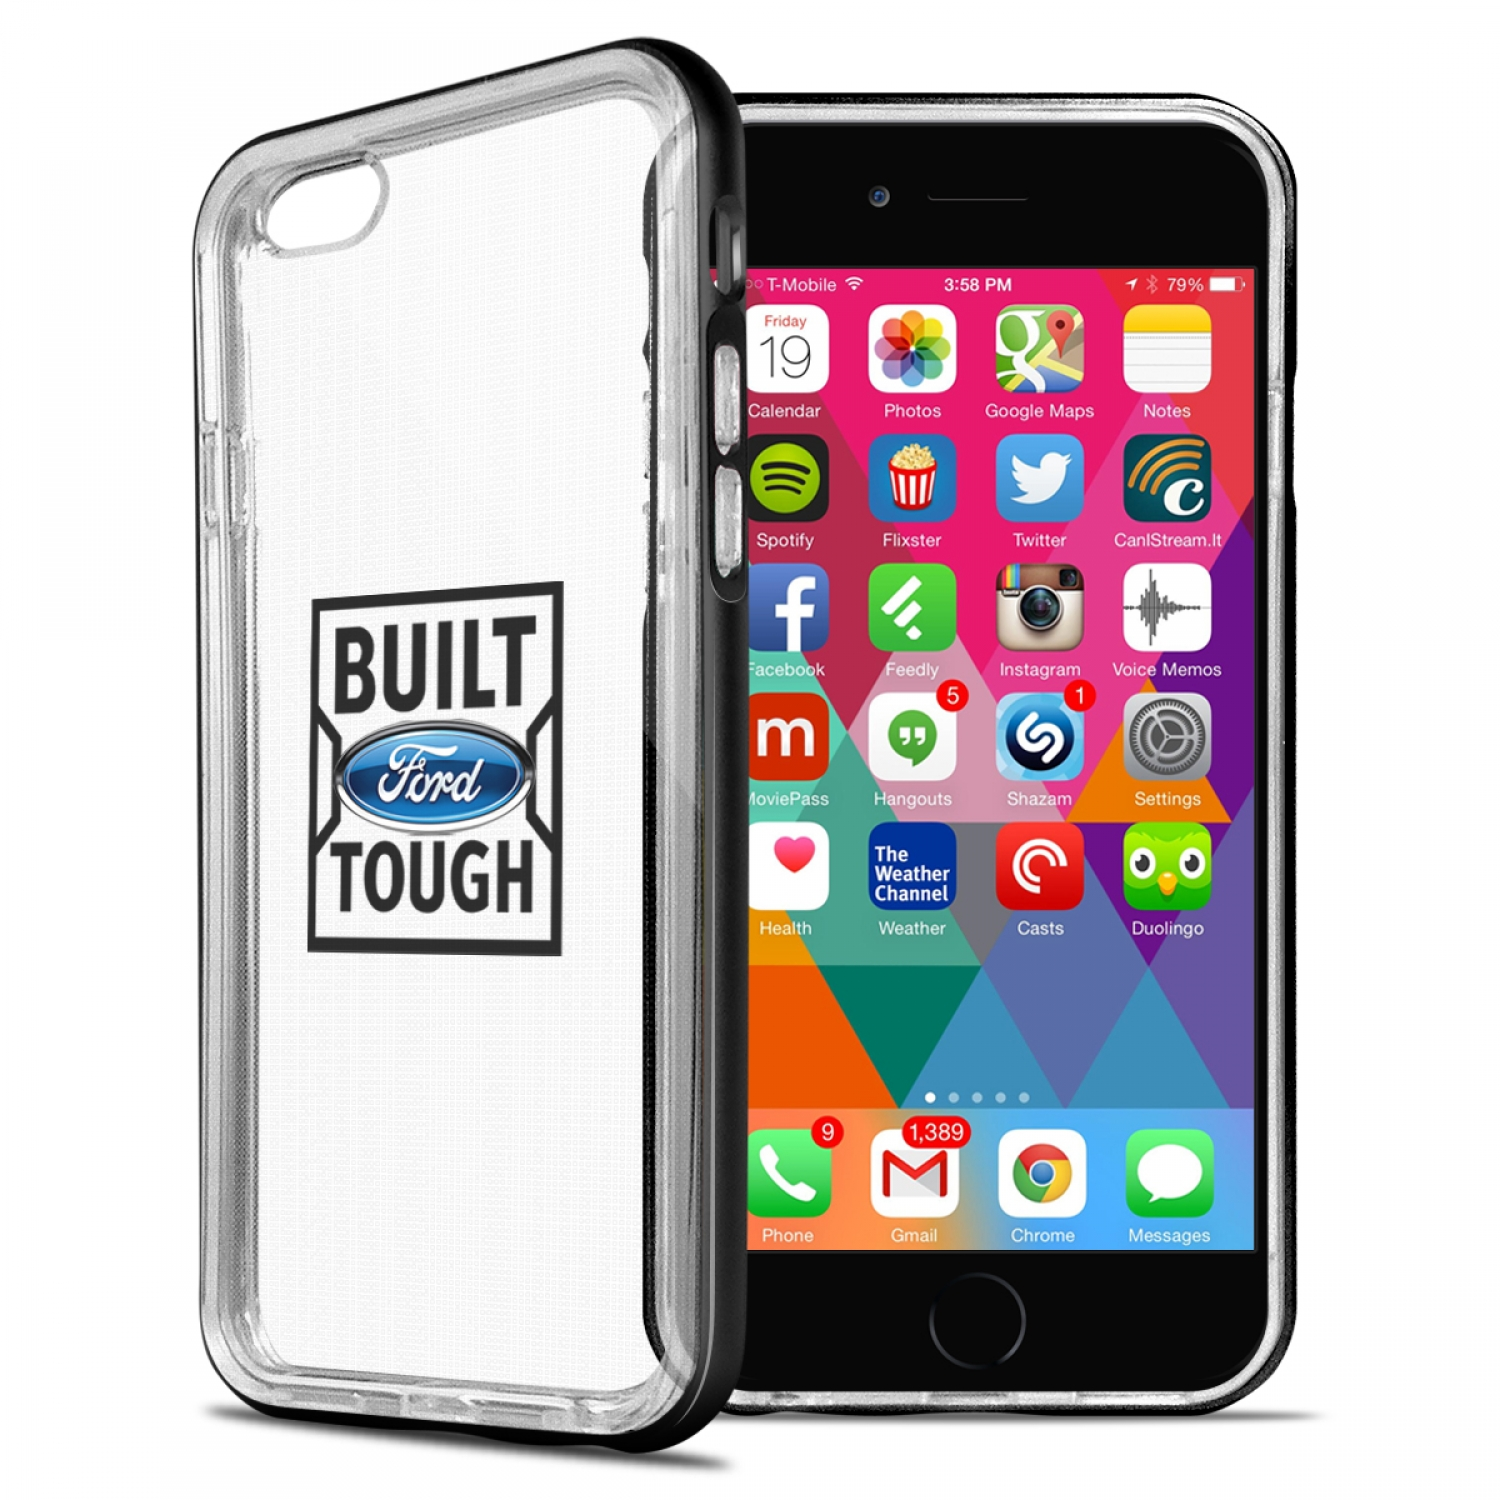 Ford Built Ford Tough iPhone 6 6s Shockproof Clear TPU Case with Metal Bumper Hybrid Phone Case